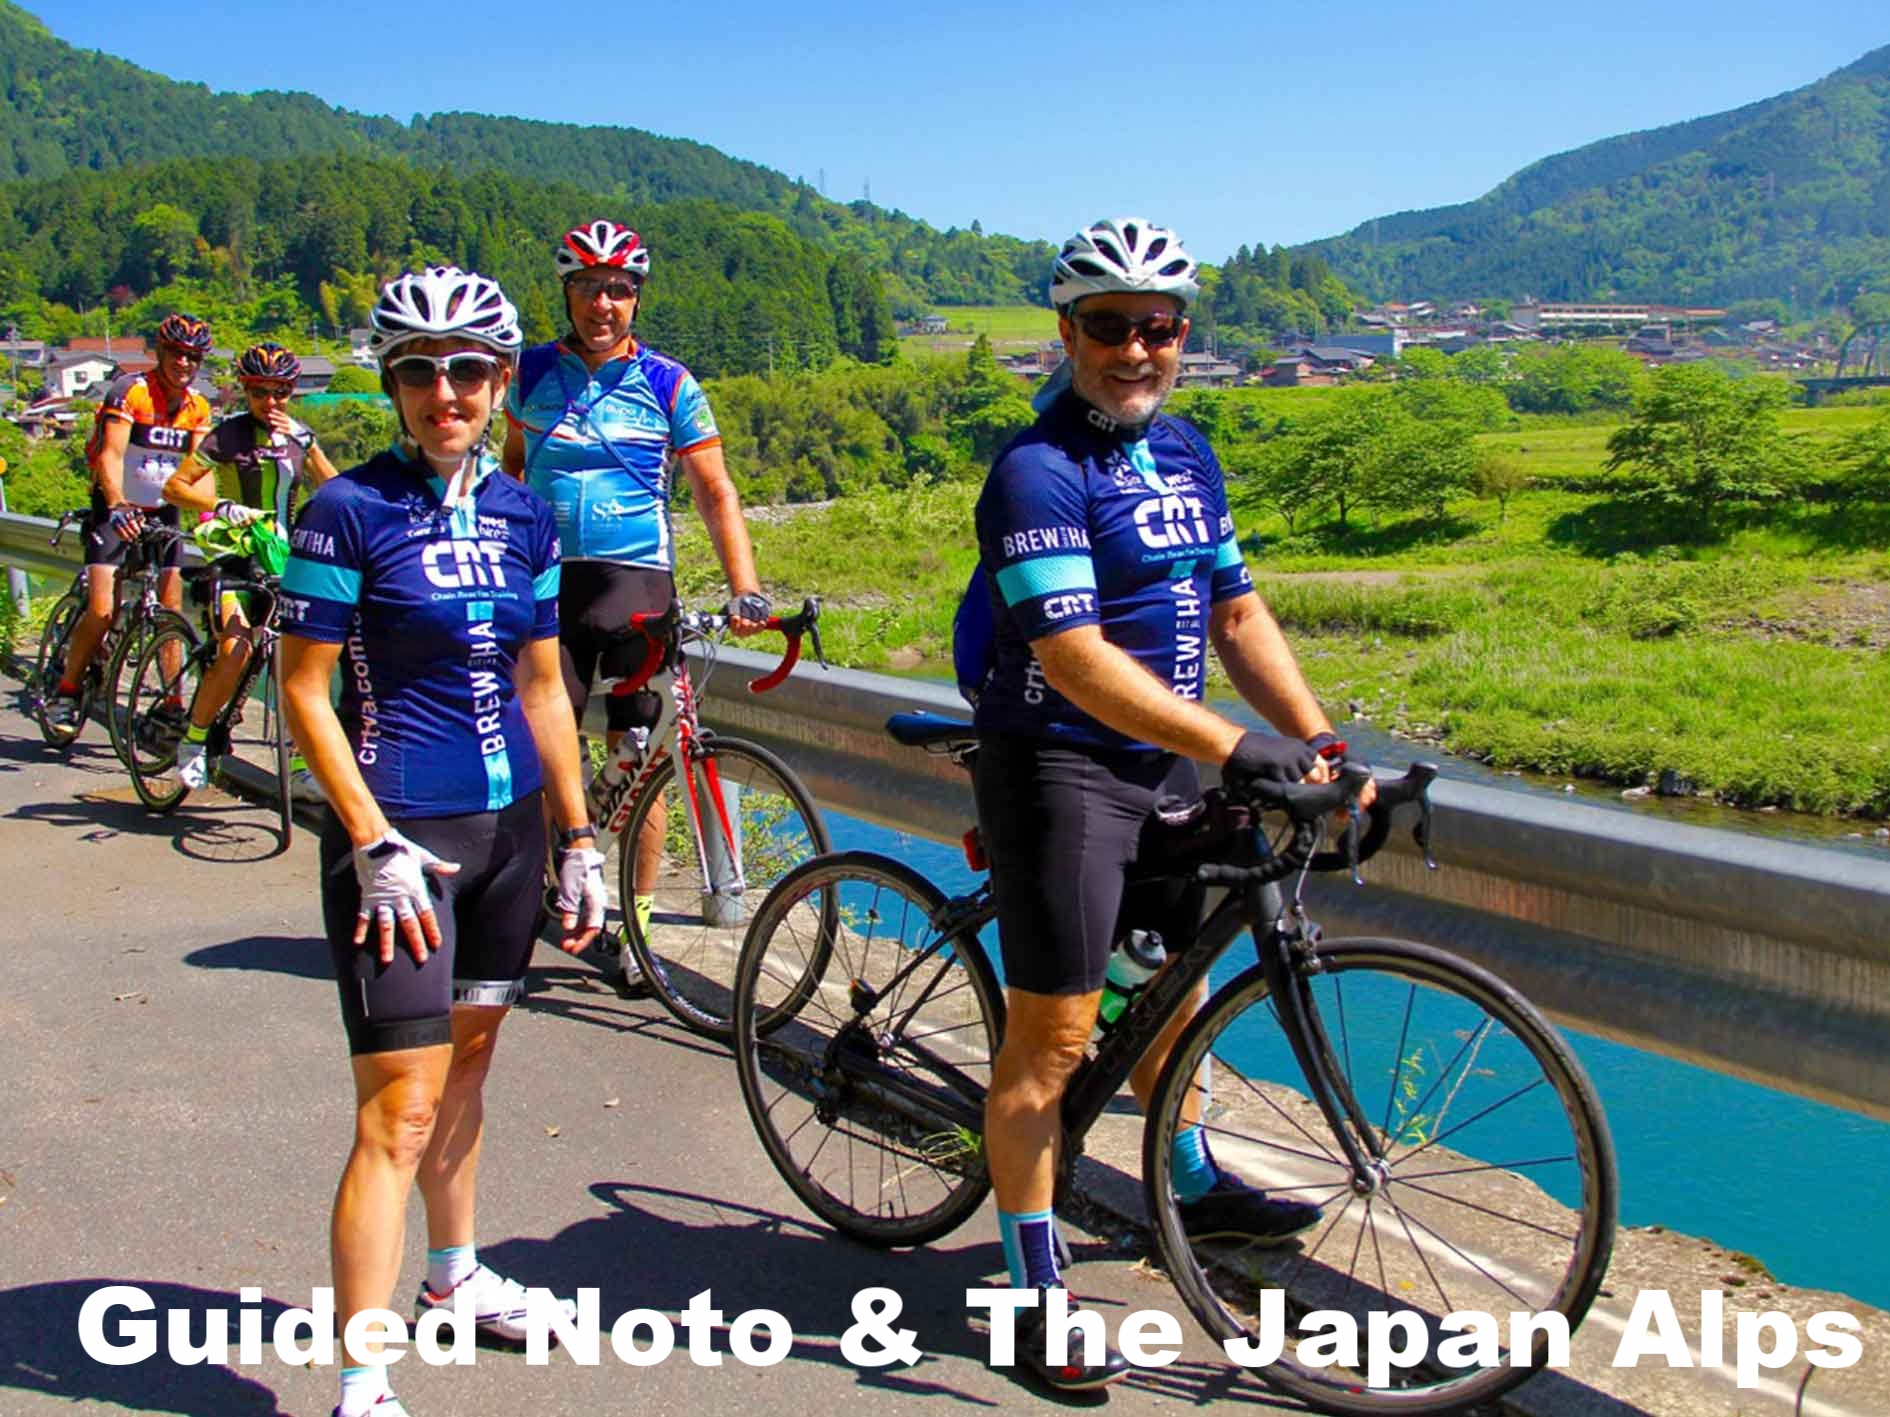 Cycle Tour Noto & The Japan Alps